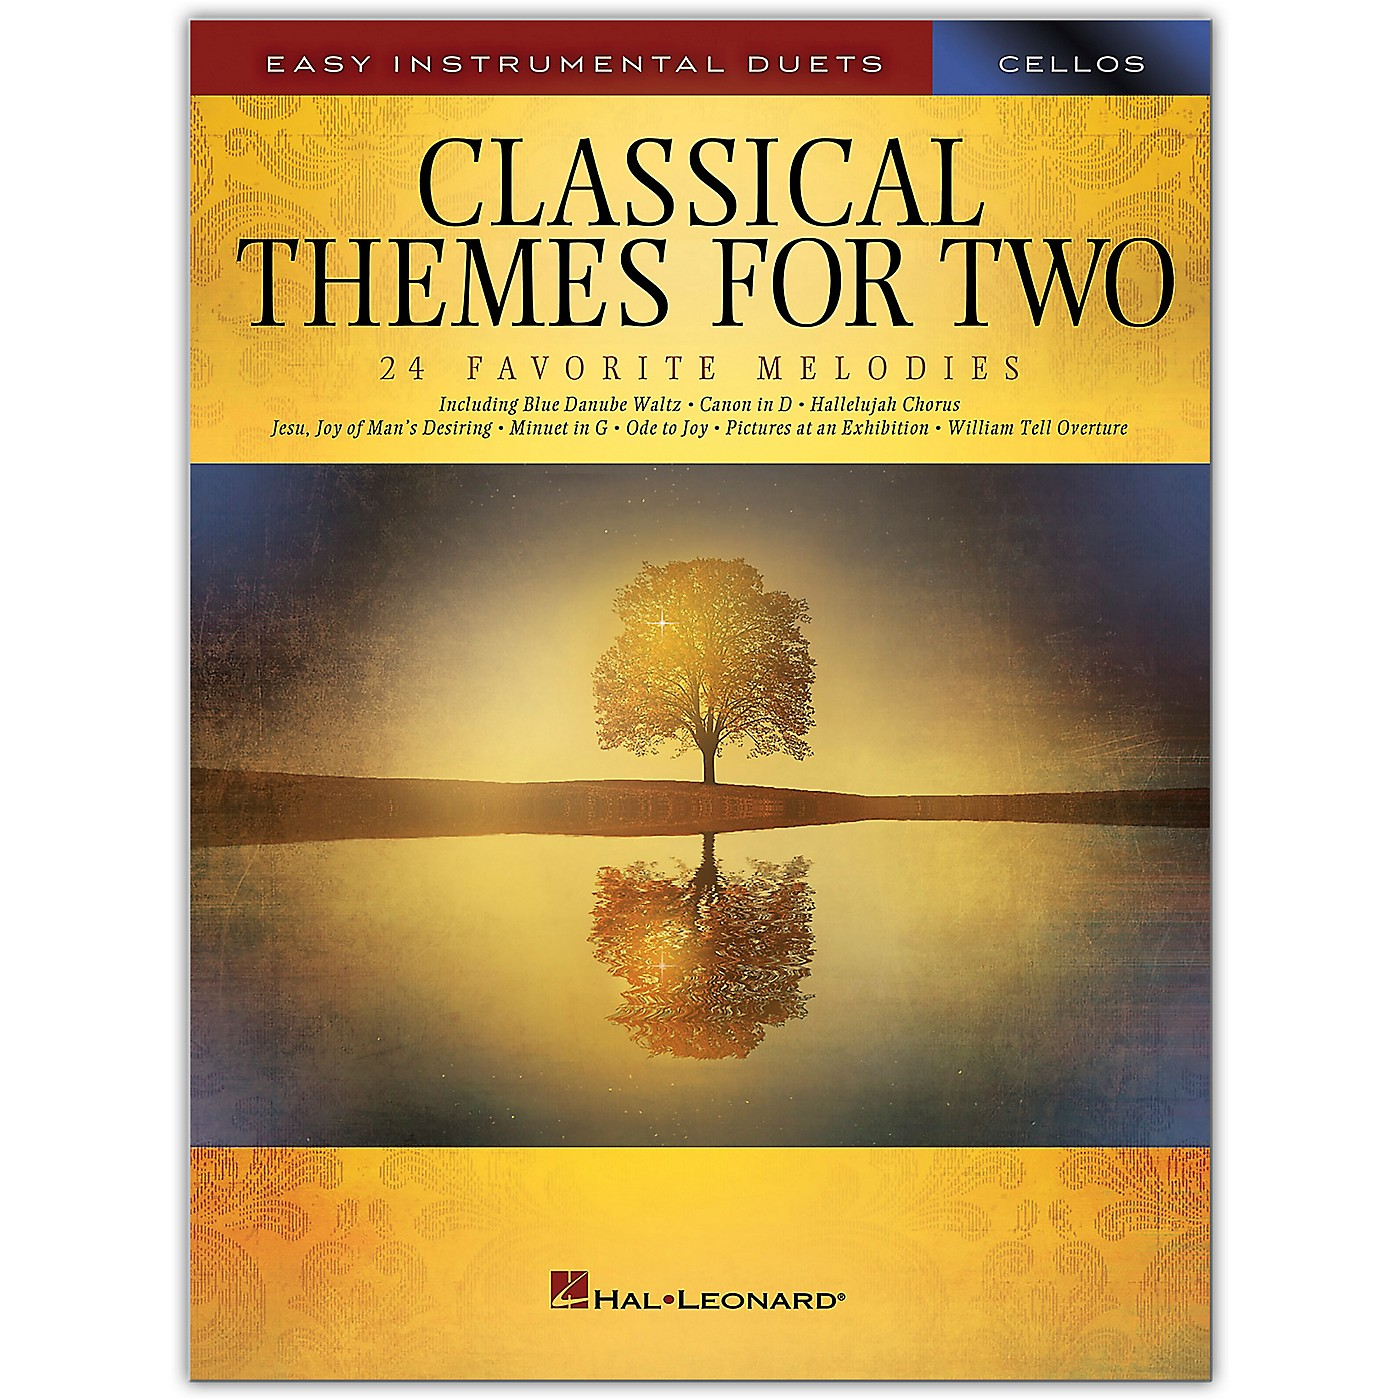 Hal Leonard Classical Themes for Two Cellos - Easy Instrumental Duets thumbnail